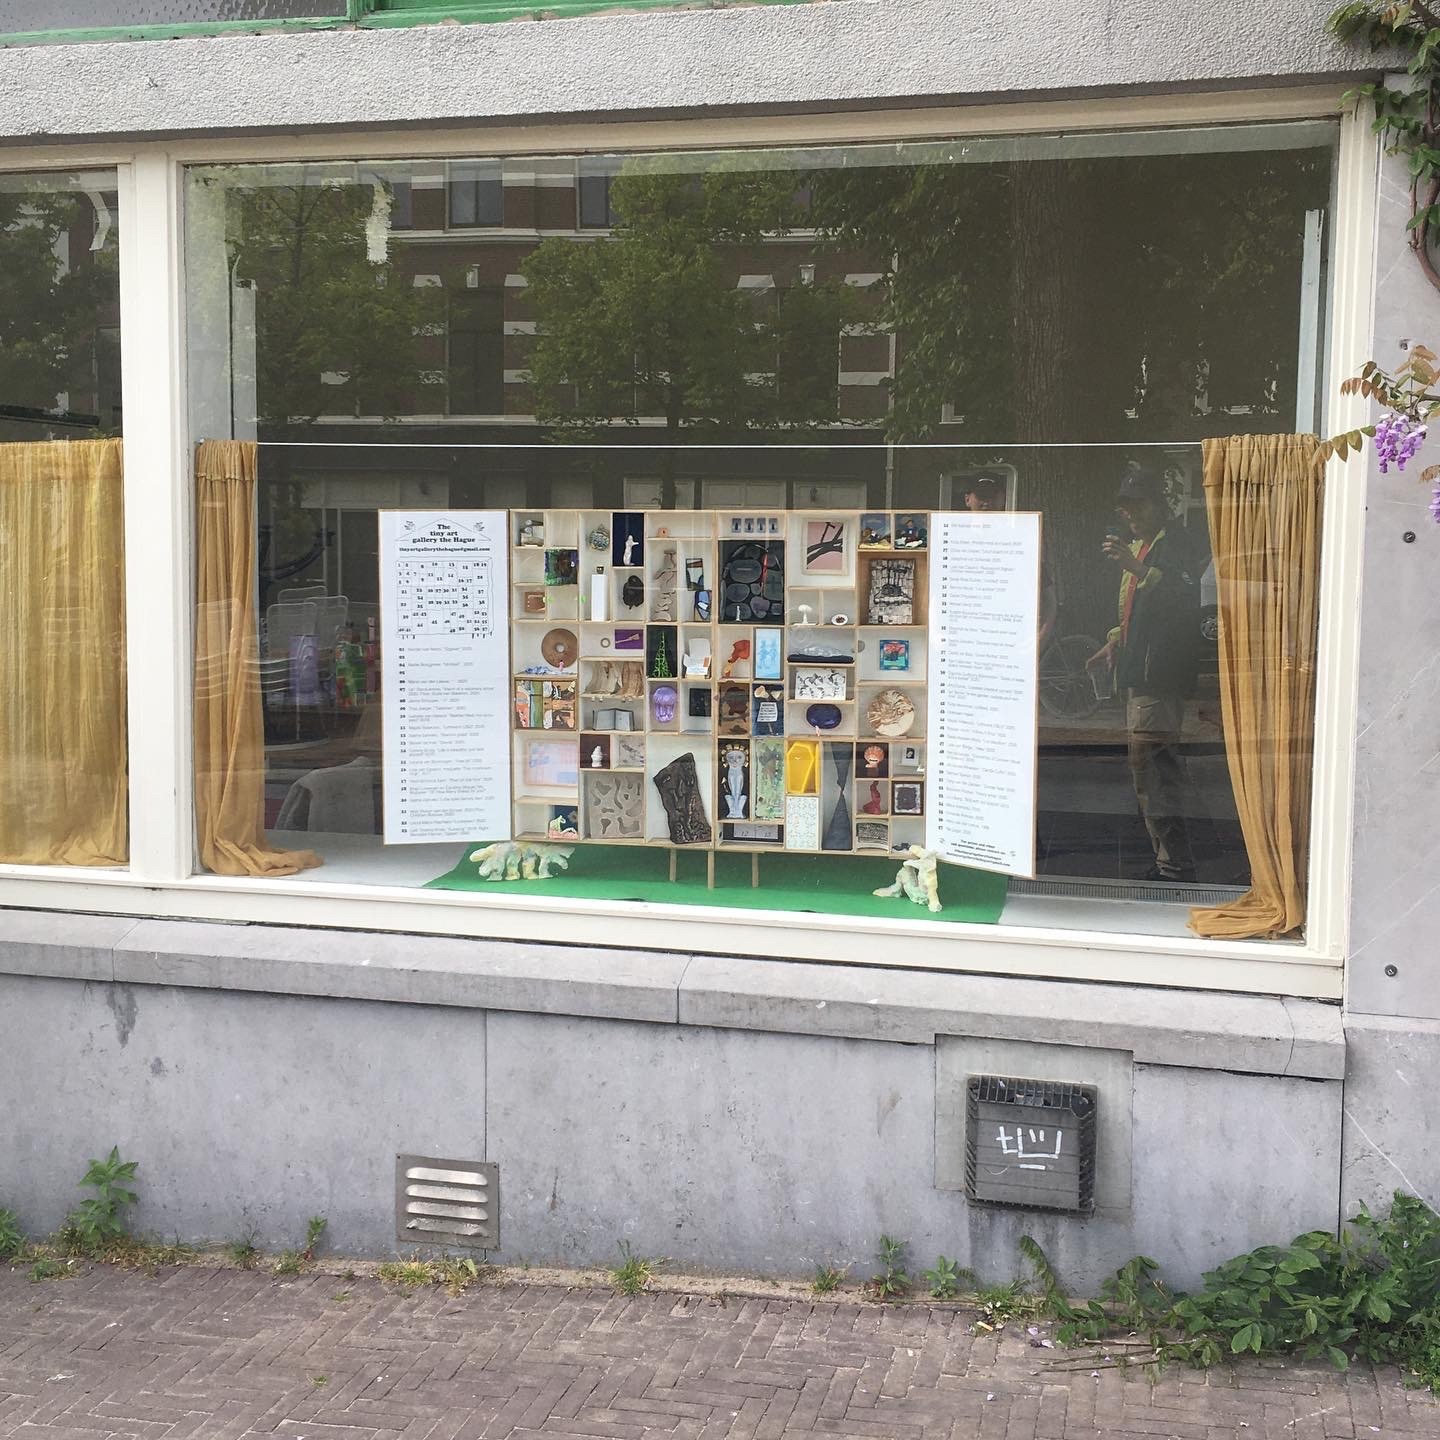 Tiny Art Gallery window view in The Hague